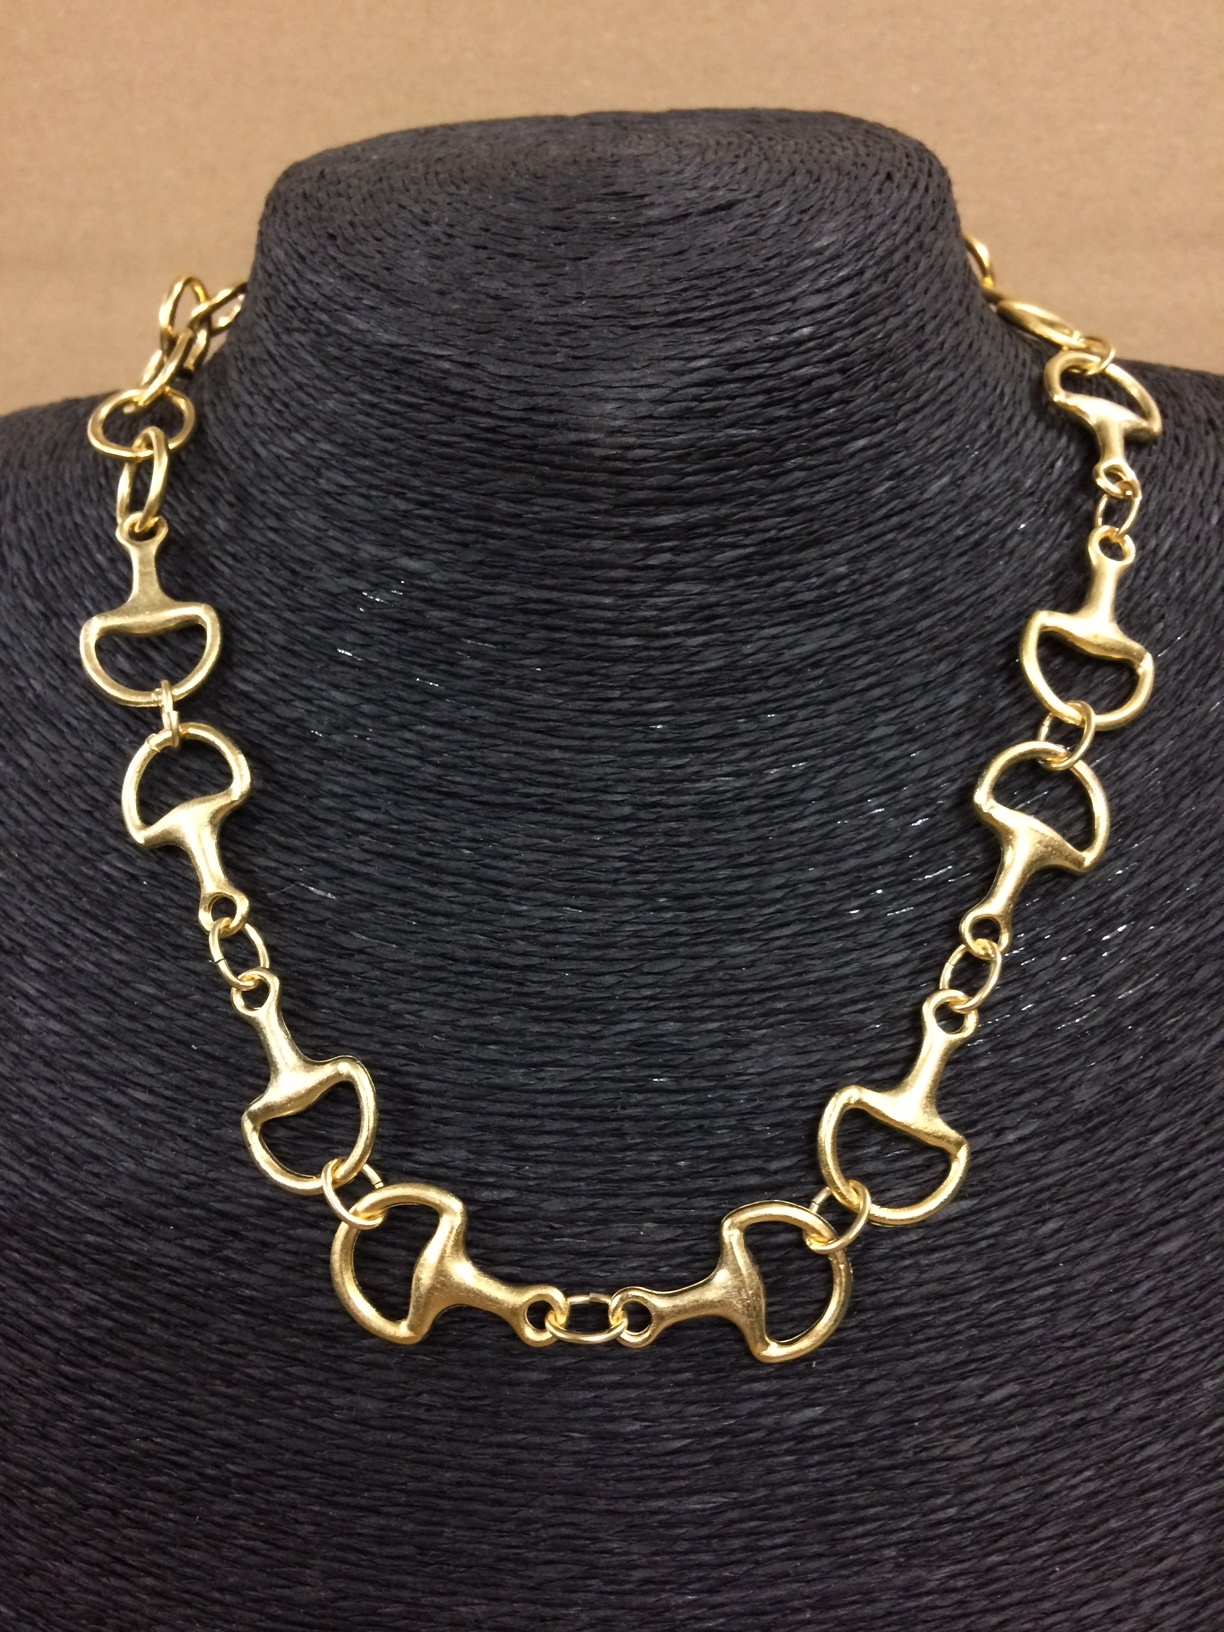 susan-shaw-equestrian-necklace-gold-bits